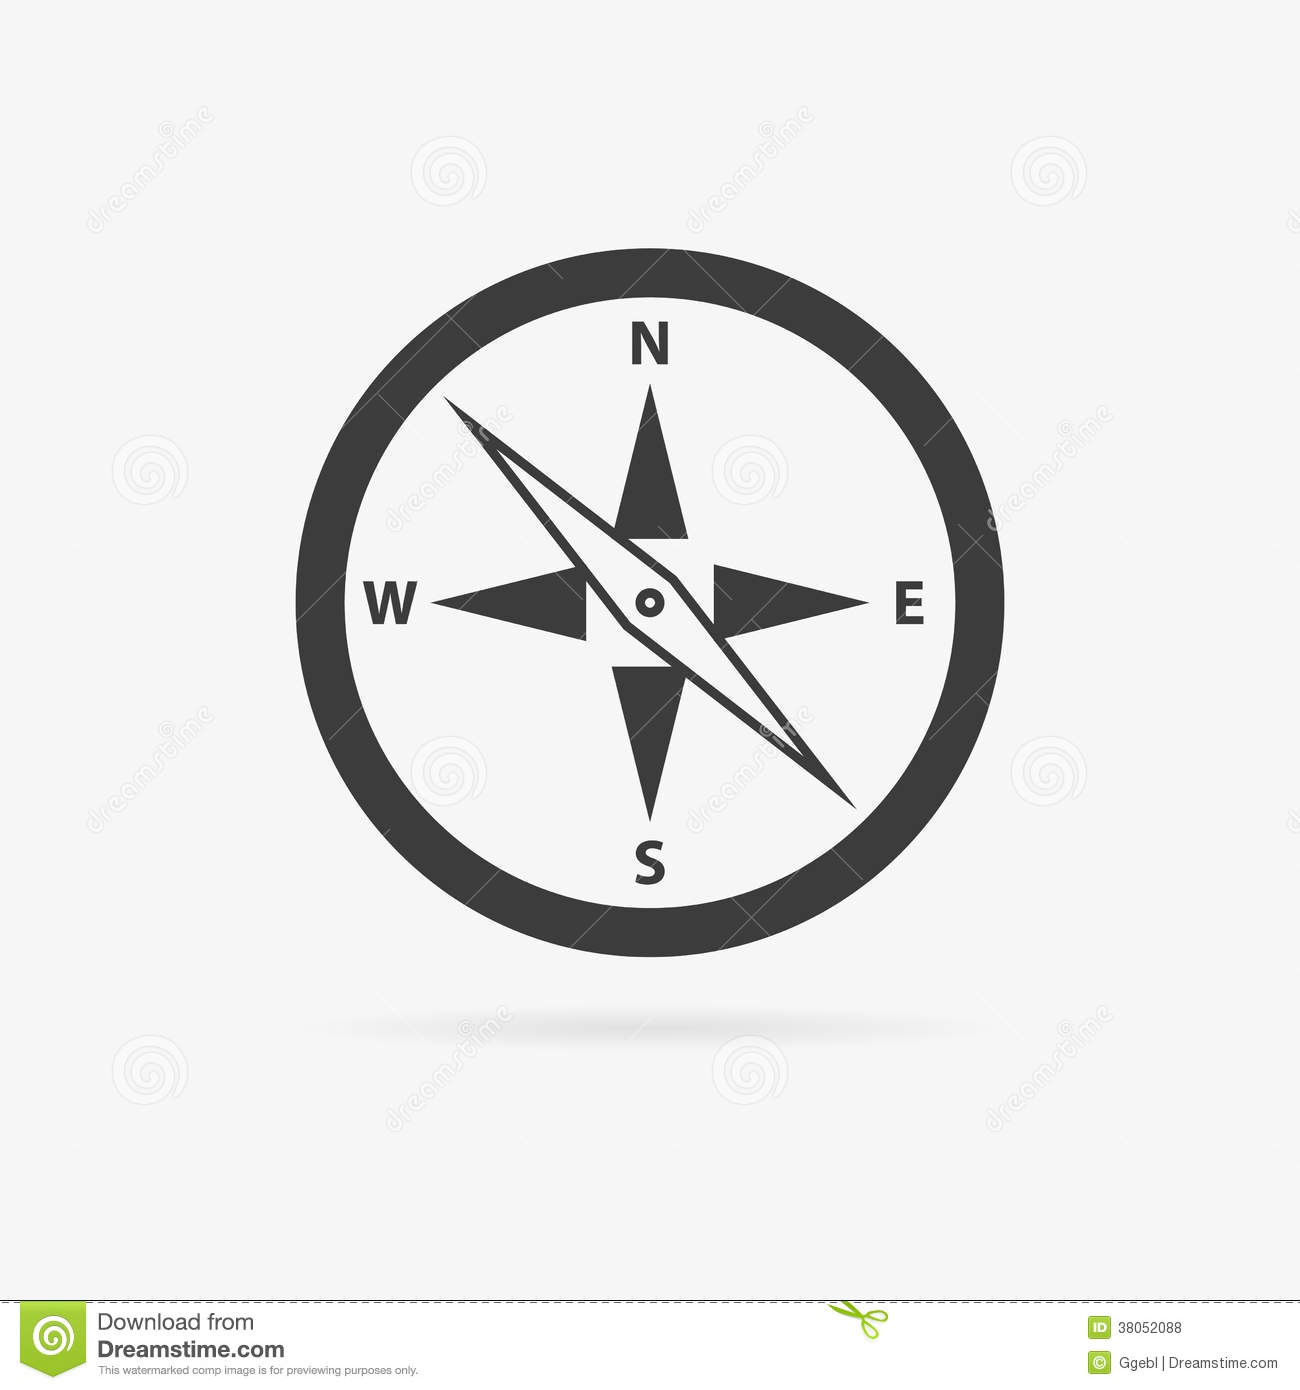 vector compass icon stock illustration illustration of silver